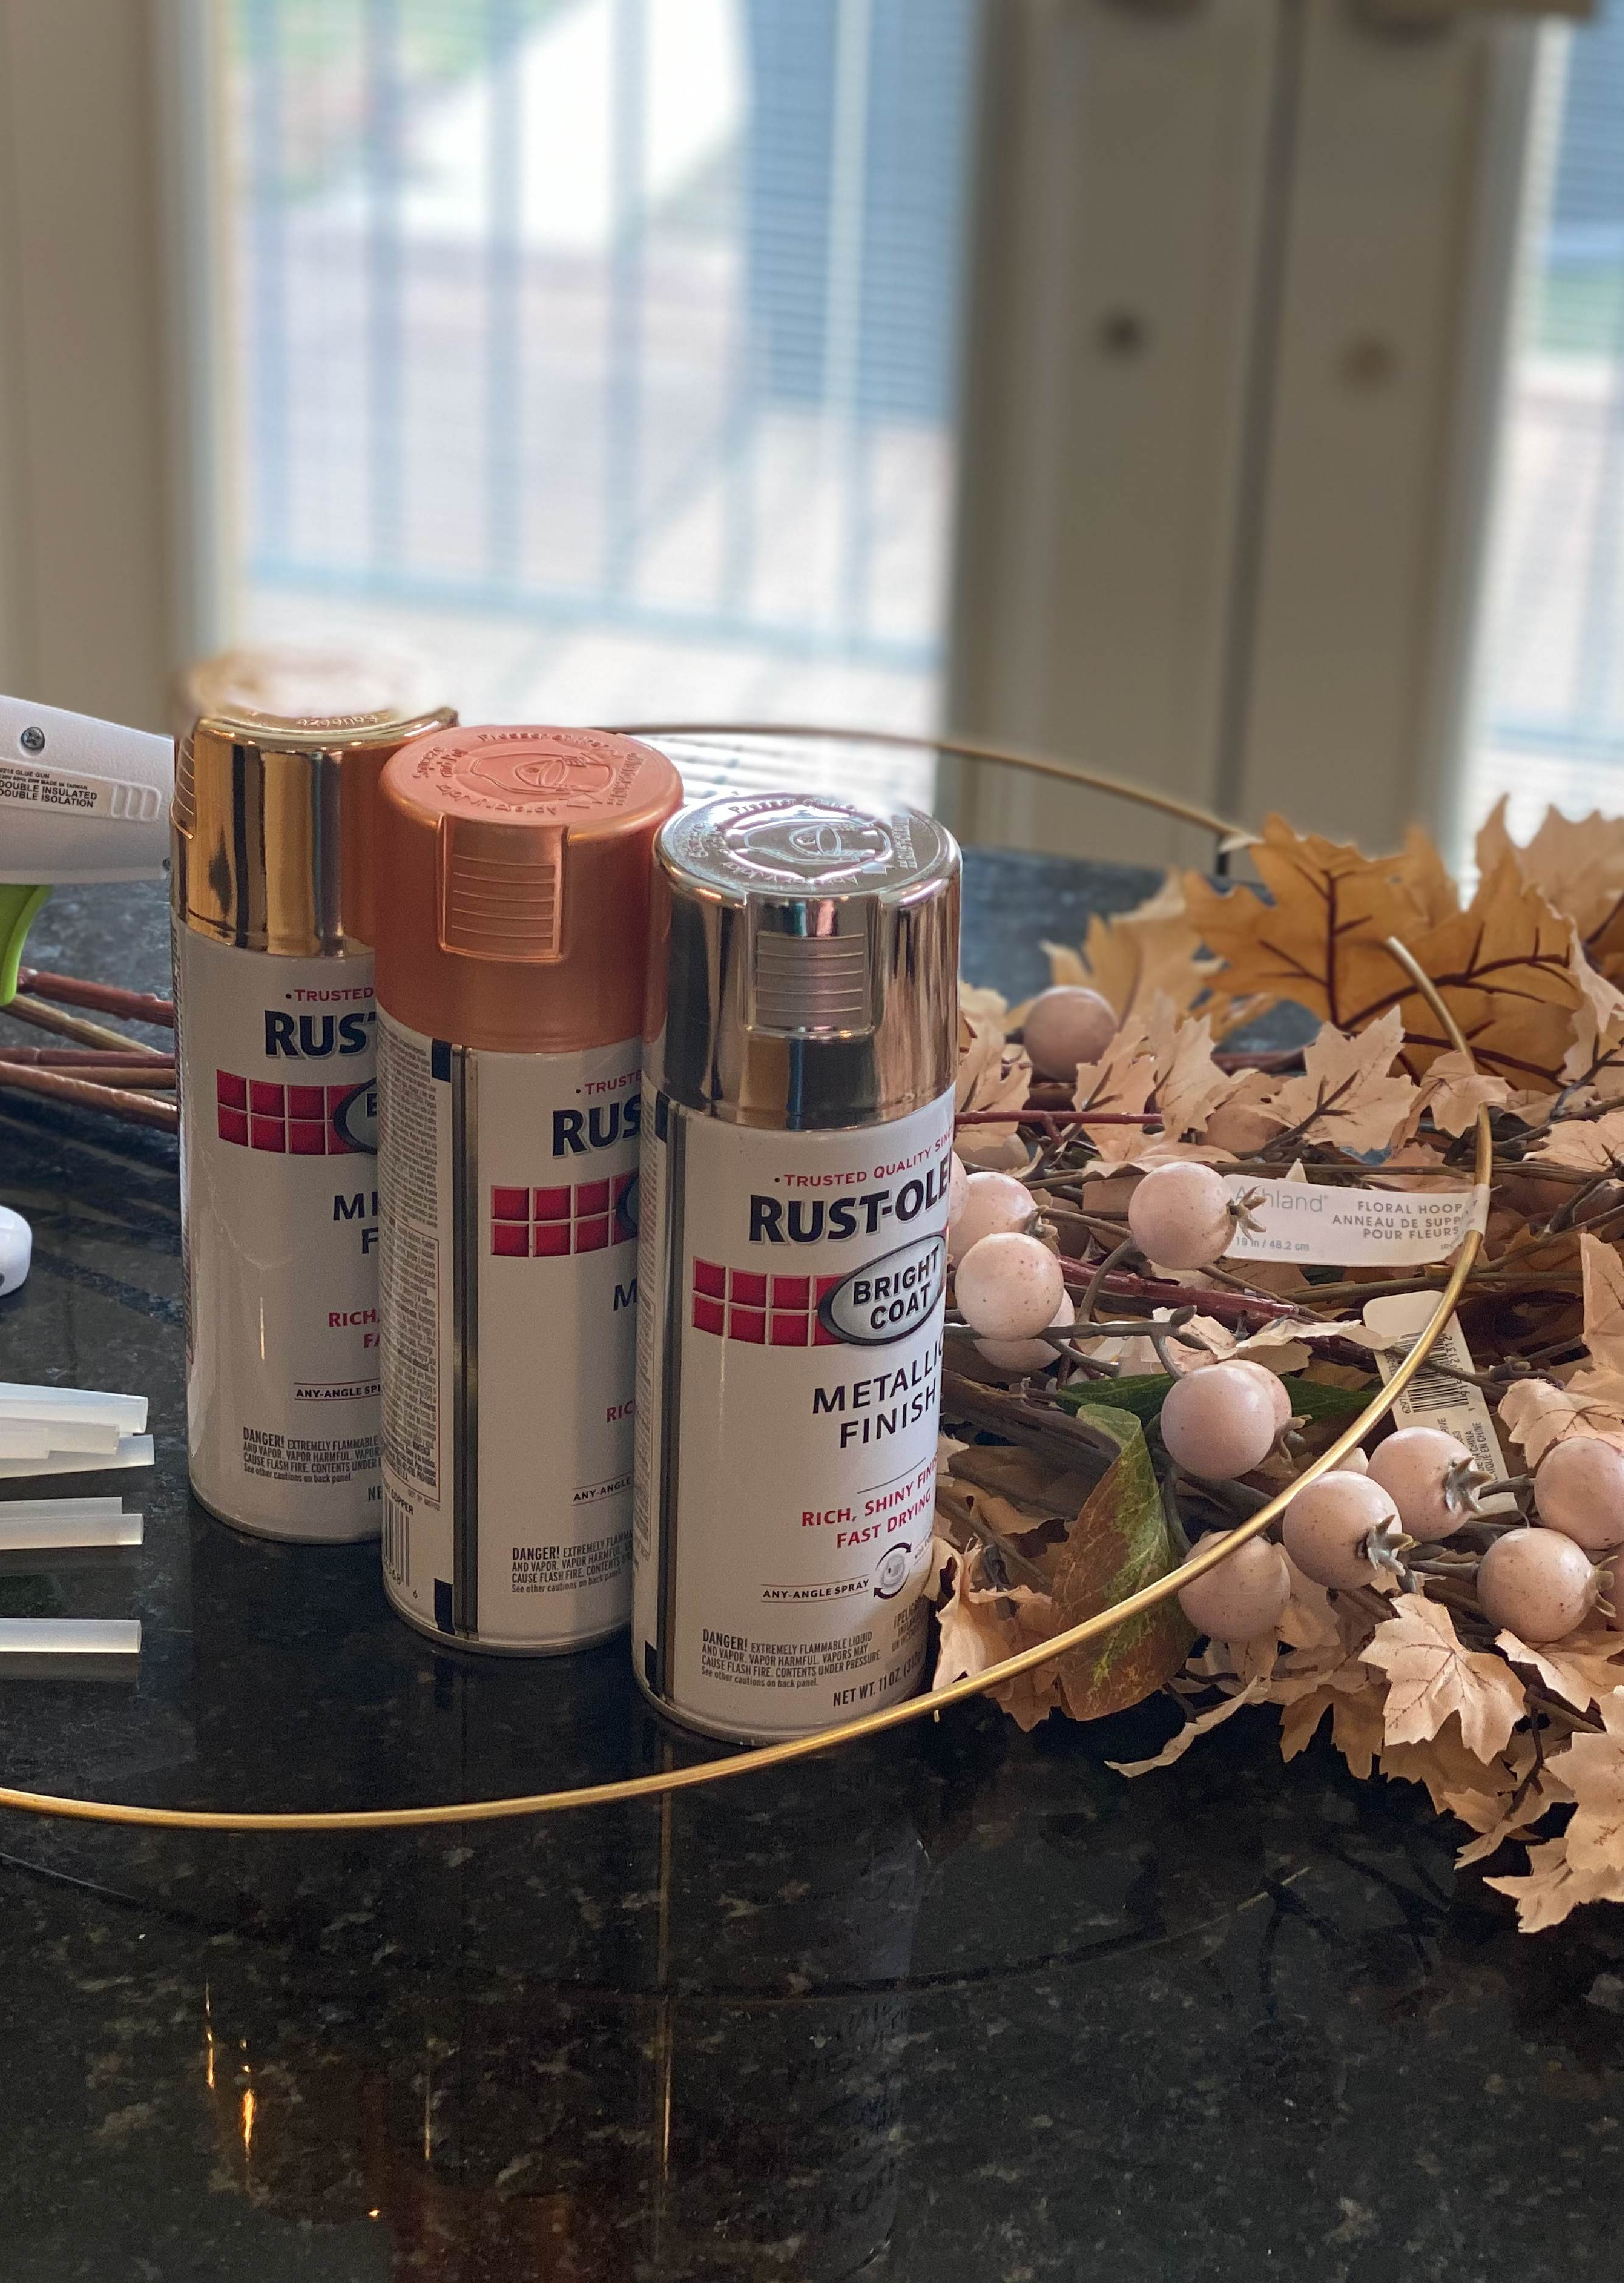 Picture of spray paint cans, glue gun, gold wire for wreath, and fake leaves.